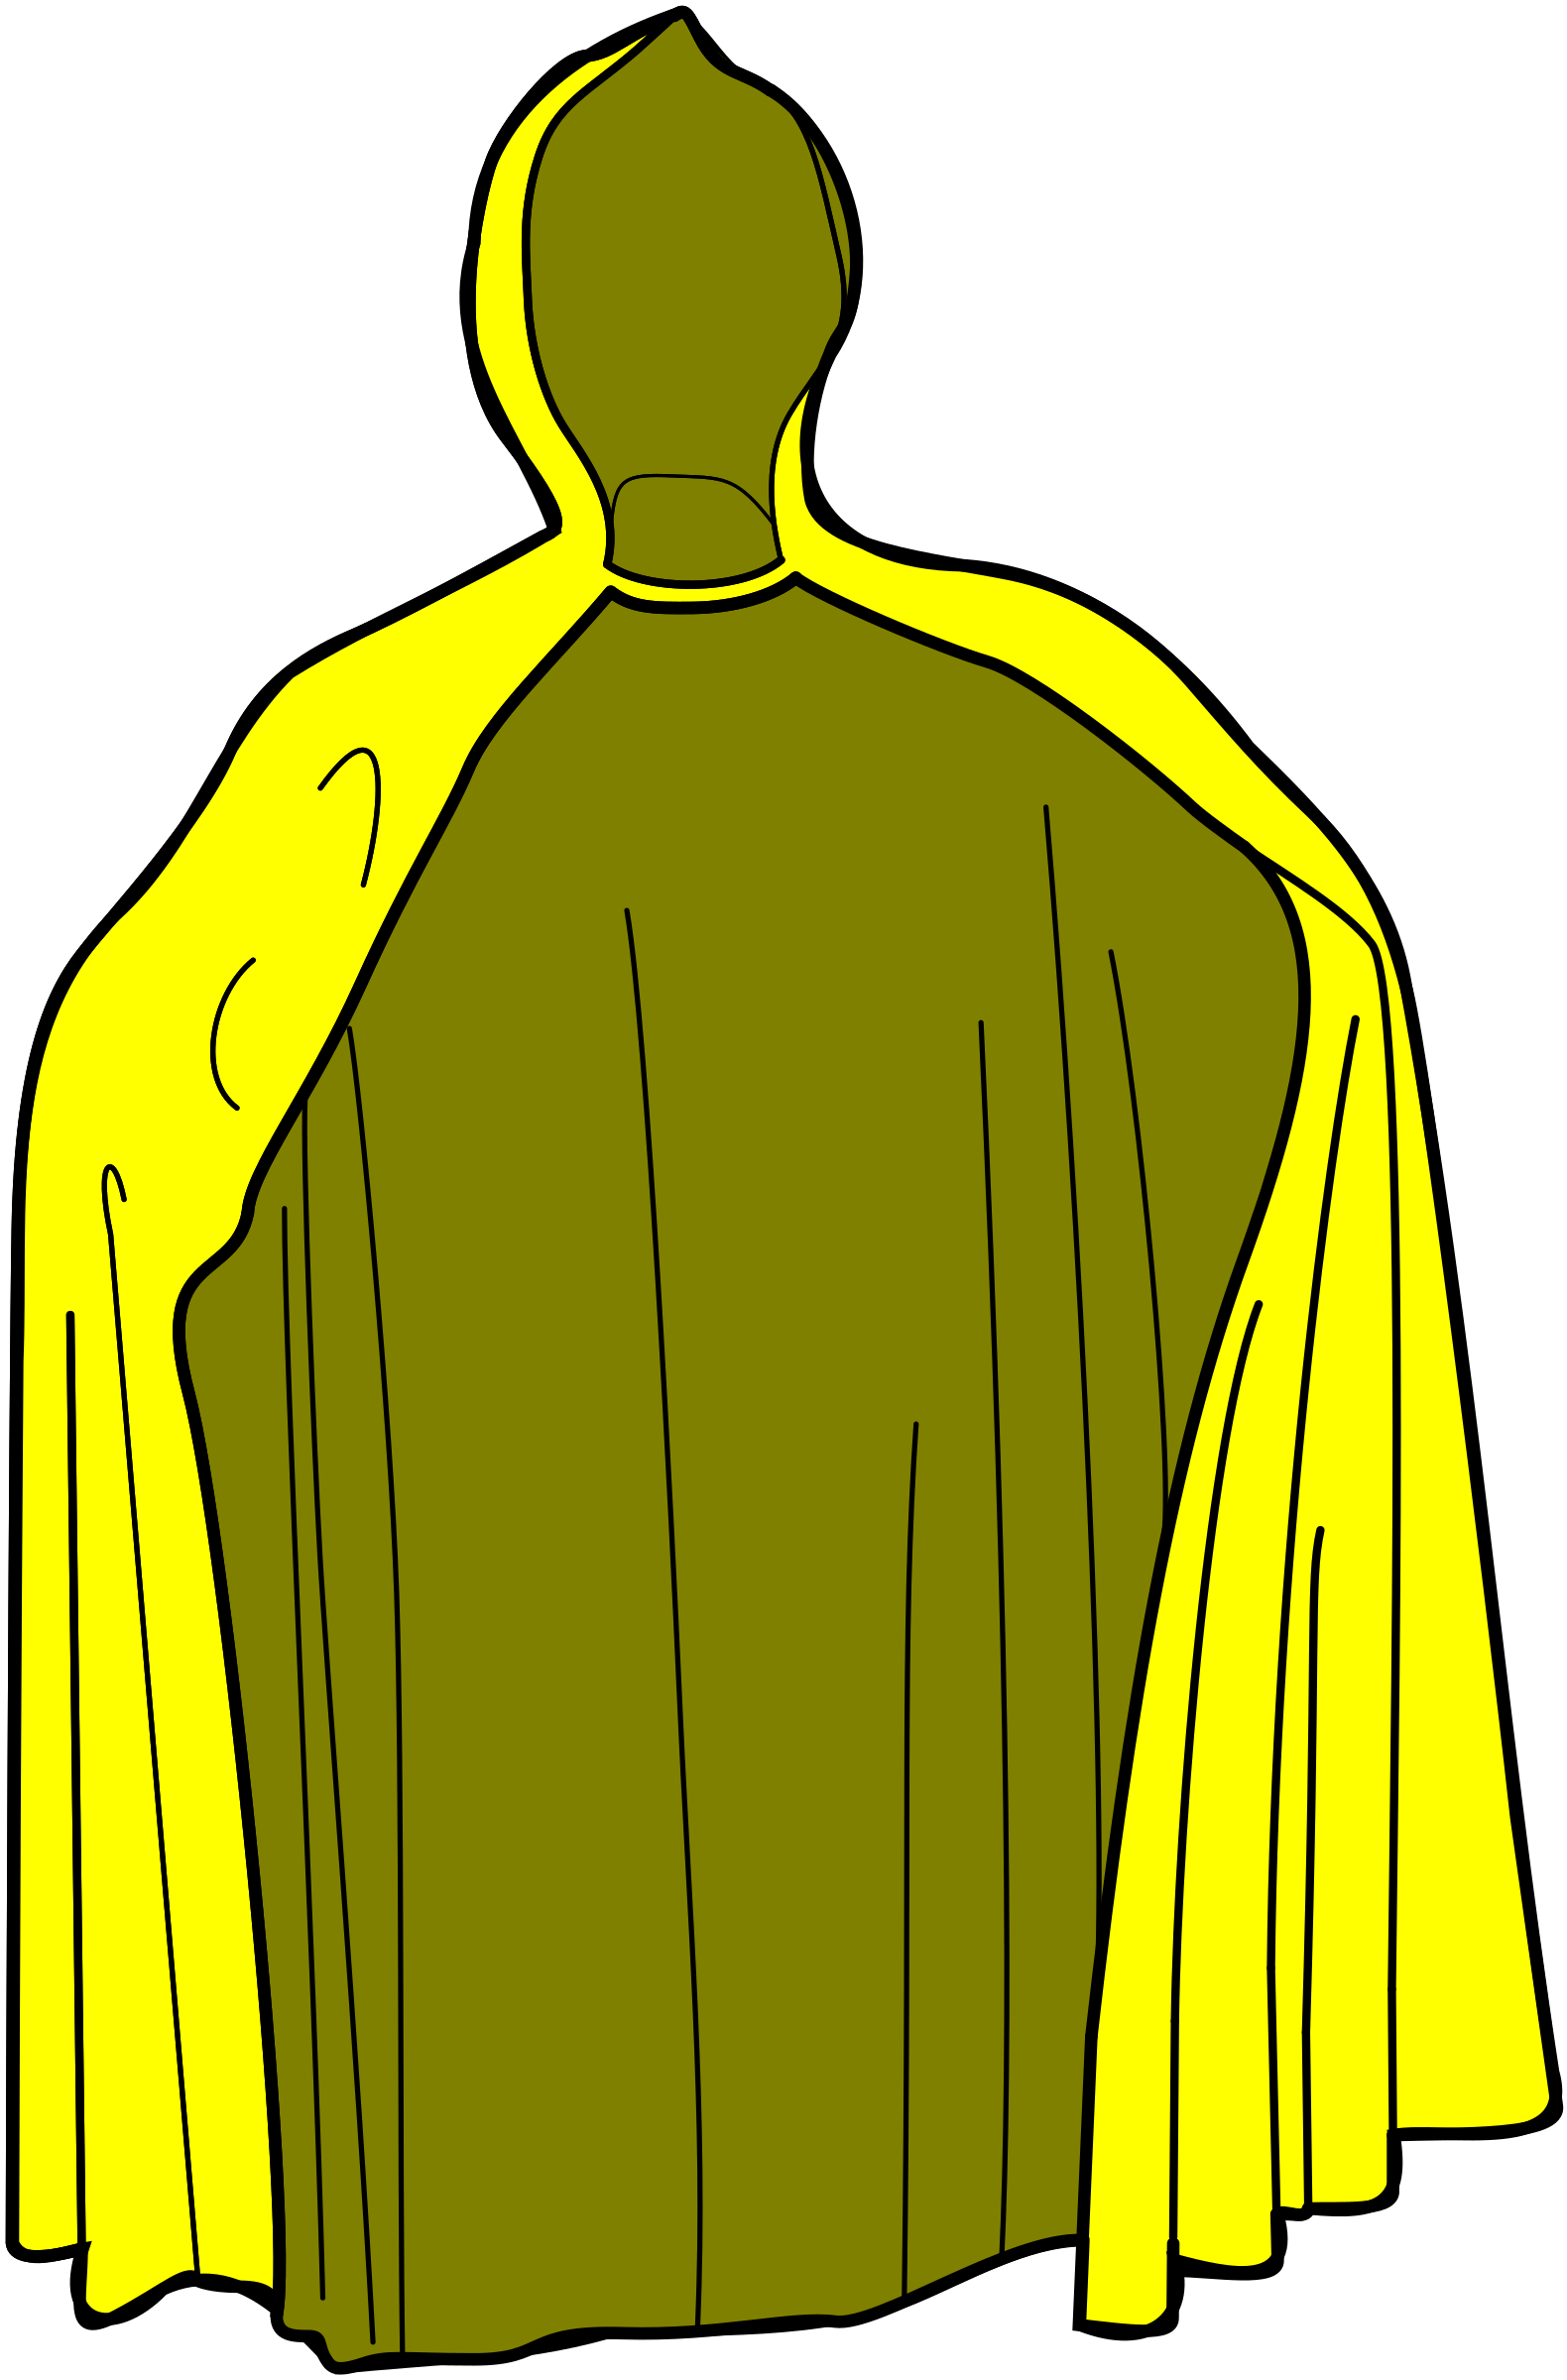 free clip art yellow jacket - photo #33